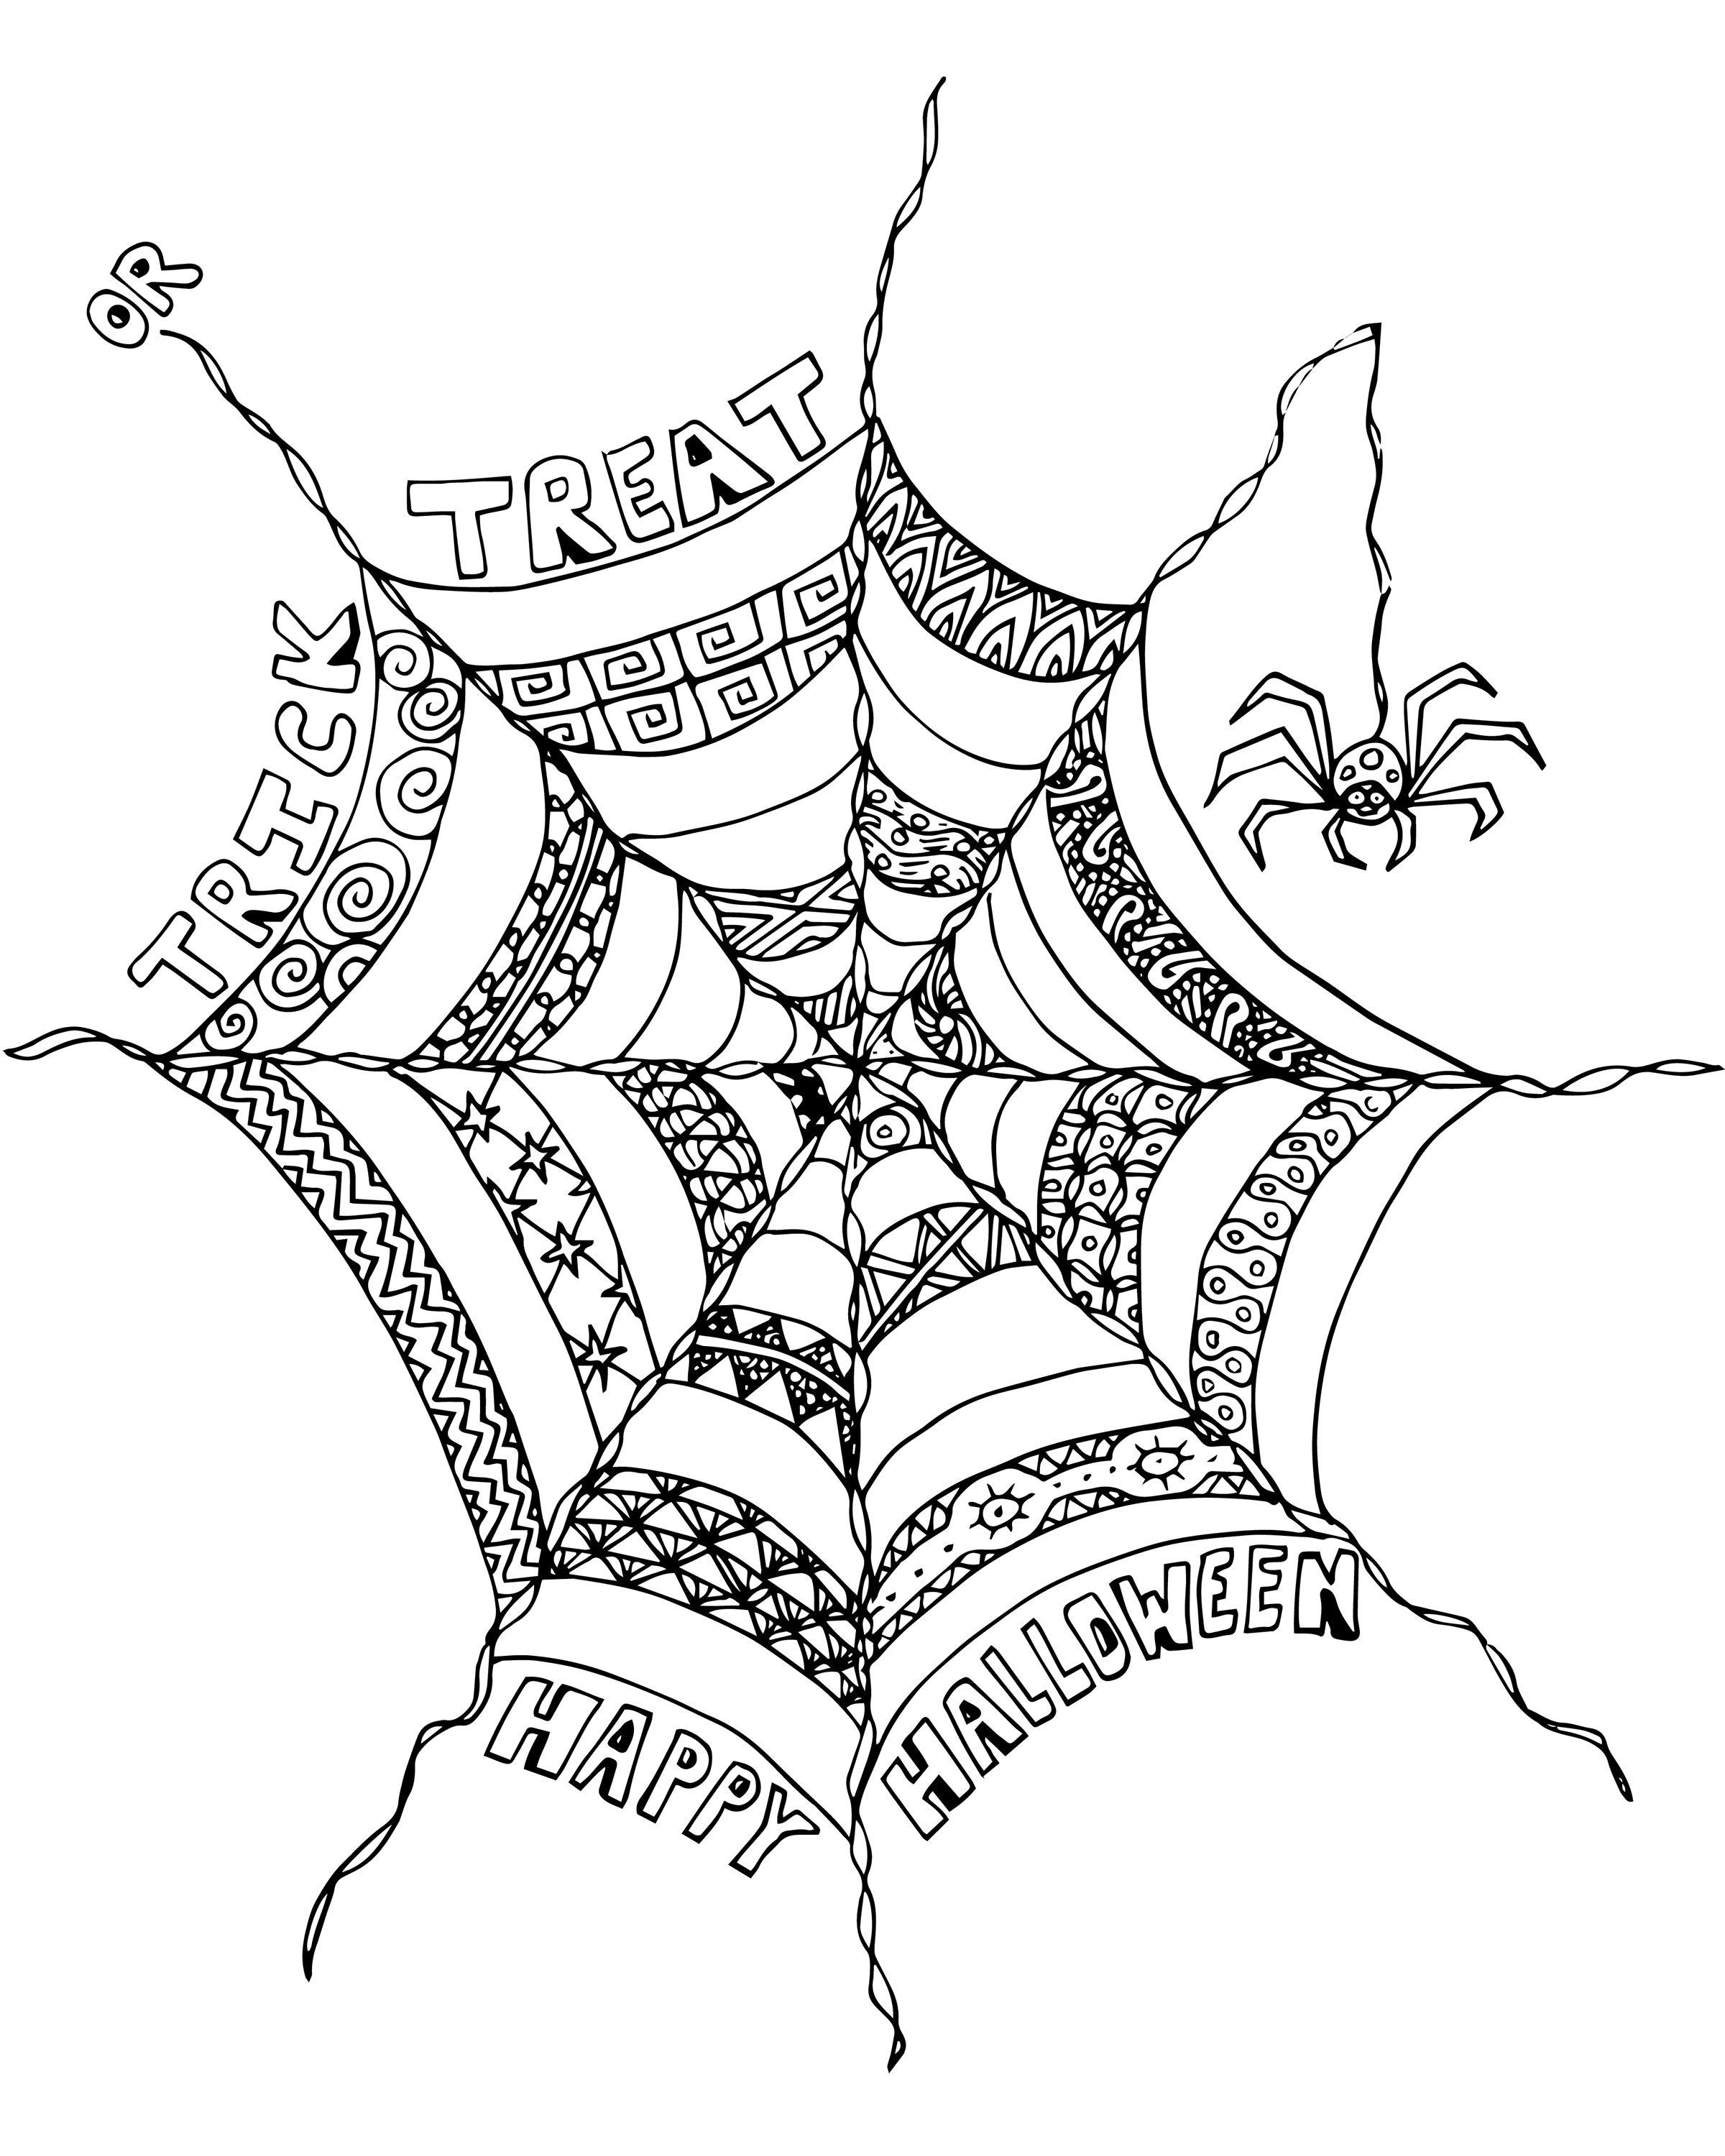 FREE Halloween Adult Coloring Page  Spider Web  FREE Adult